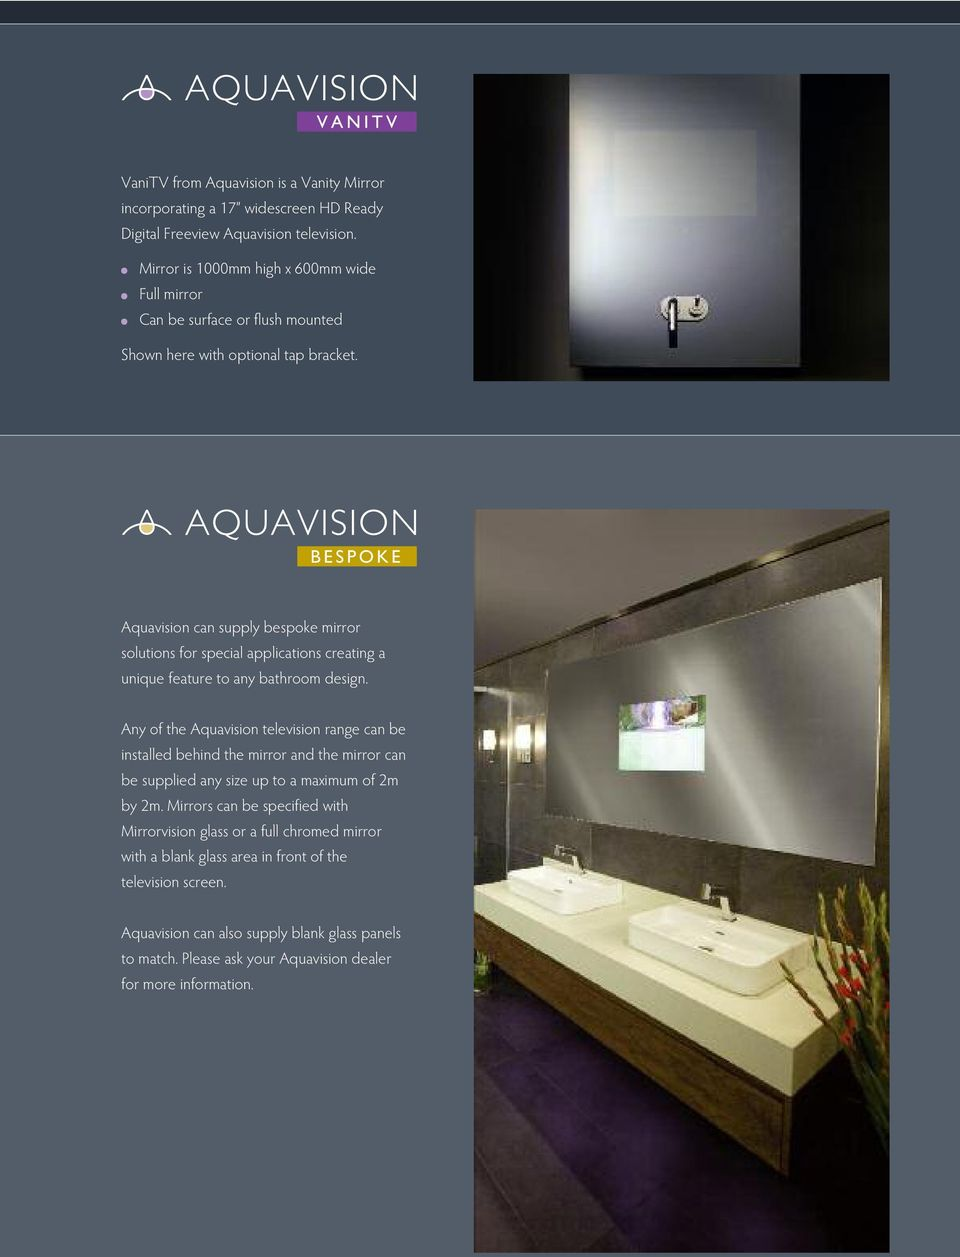 BESPOKE Aquavision can supply bespoke mirror solutions for special applications creating a unique feature to any bathroom design.